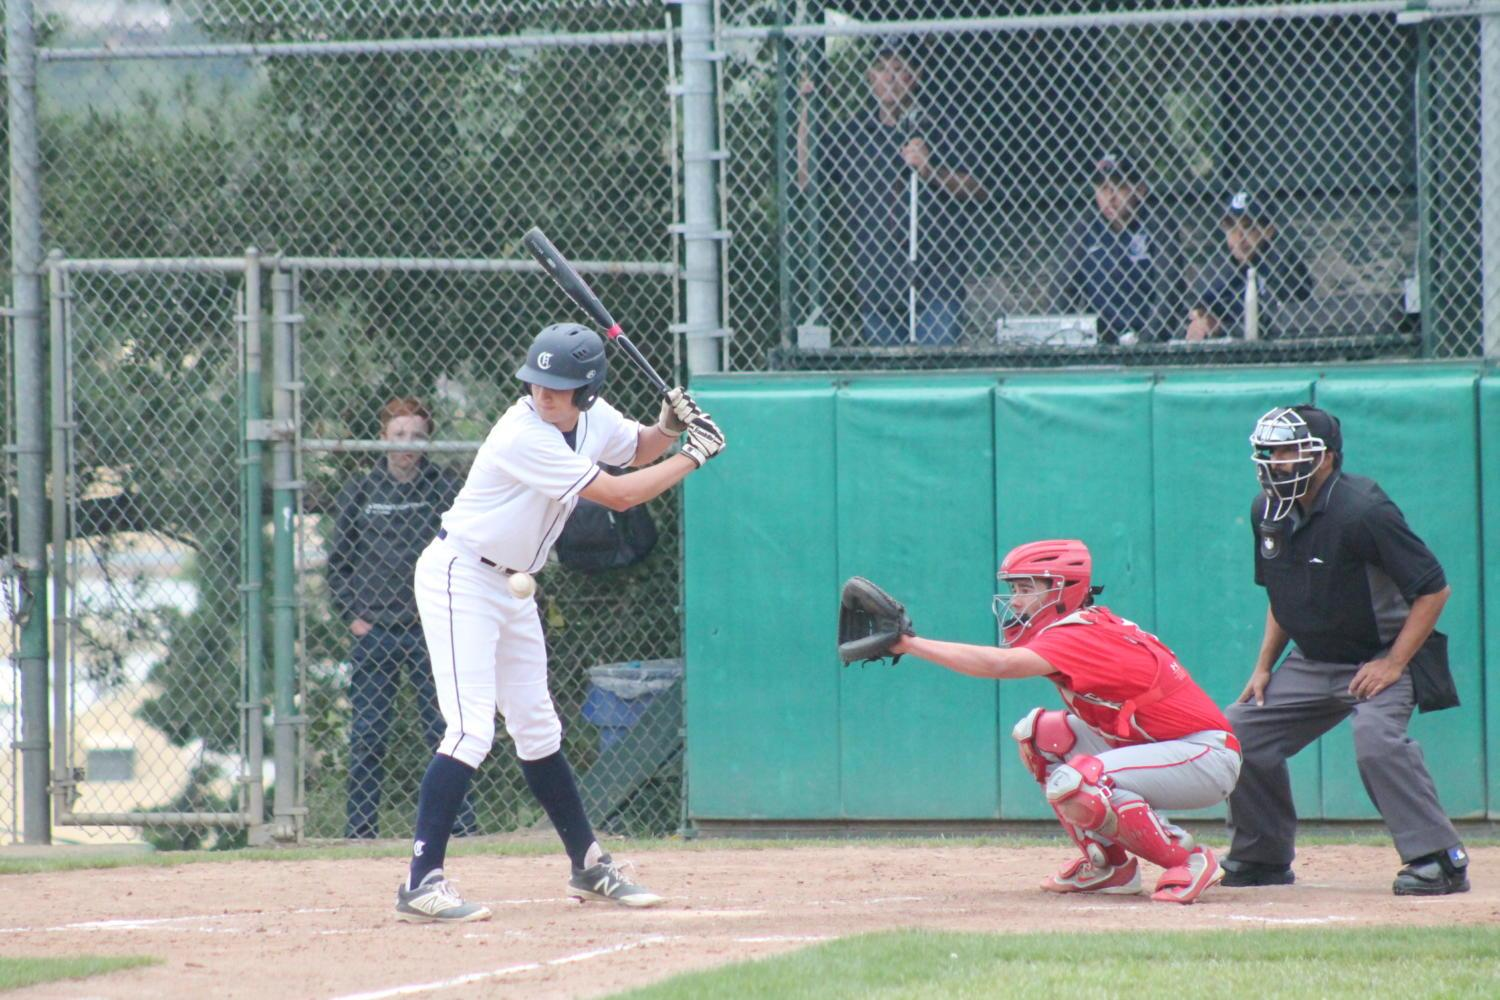 Sophomore David Bedrosian avoids a pitch and gets a walk during the game against Burlingame.